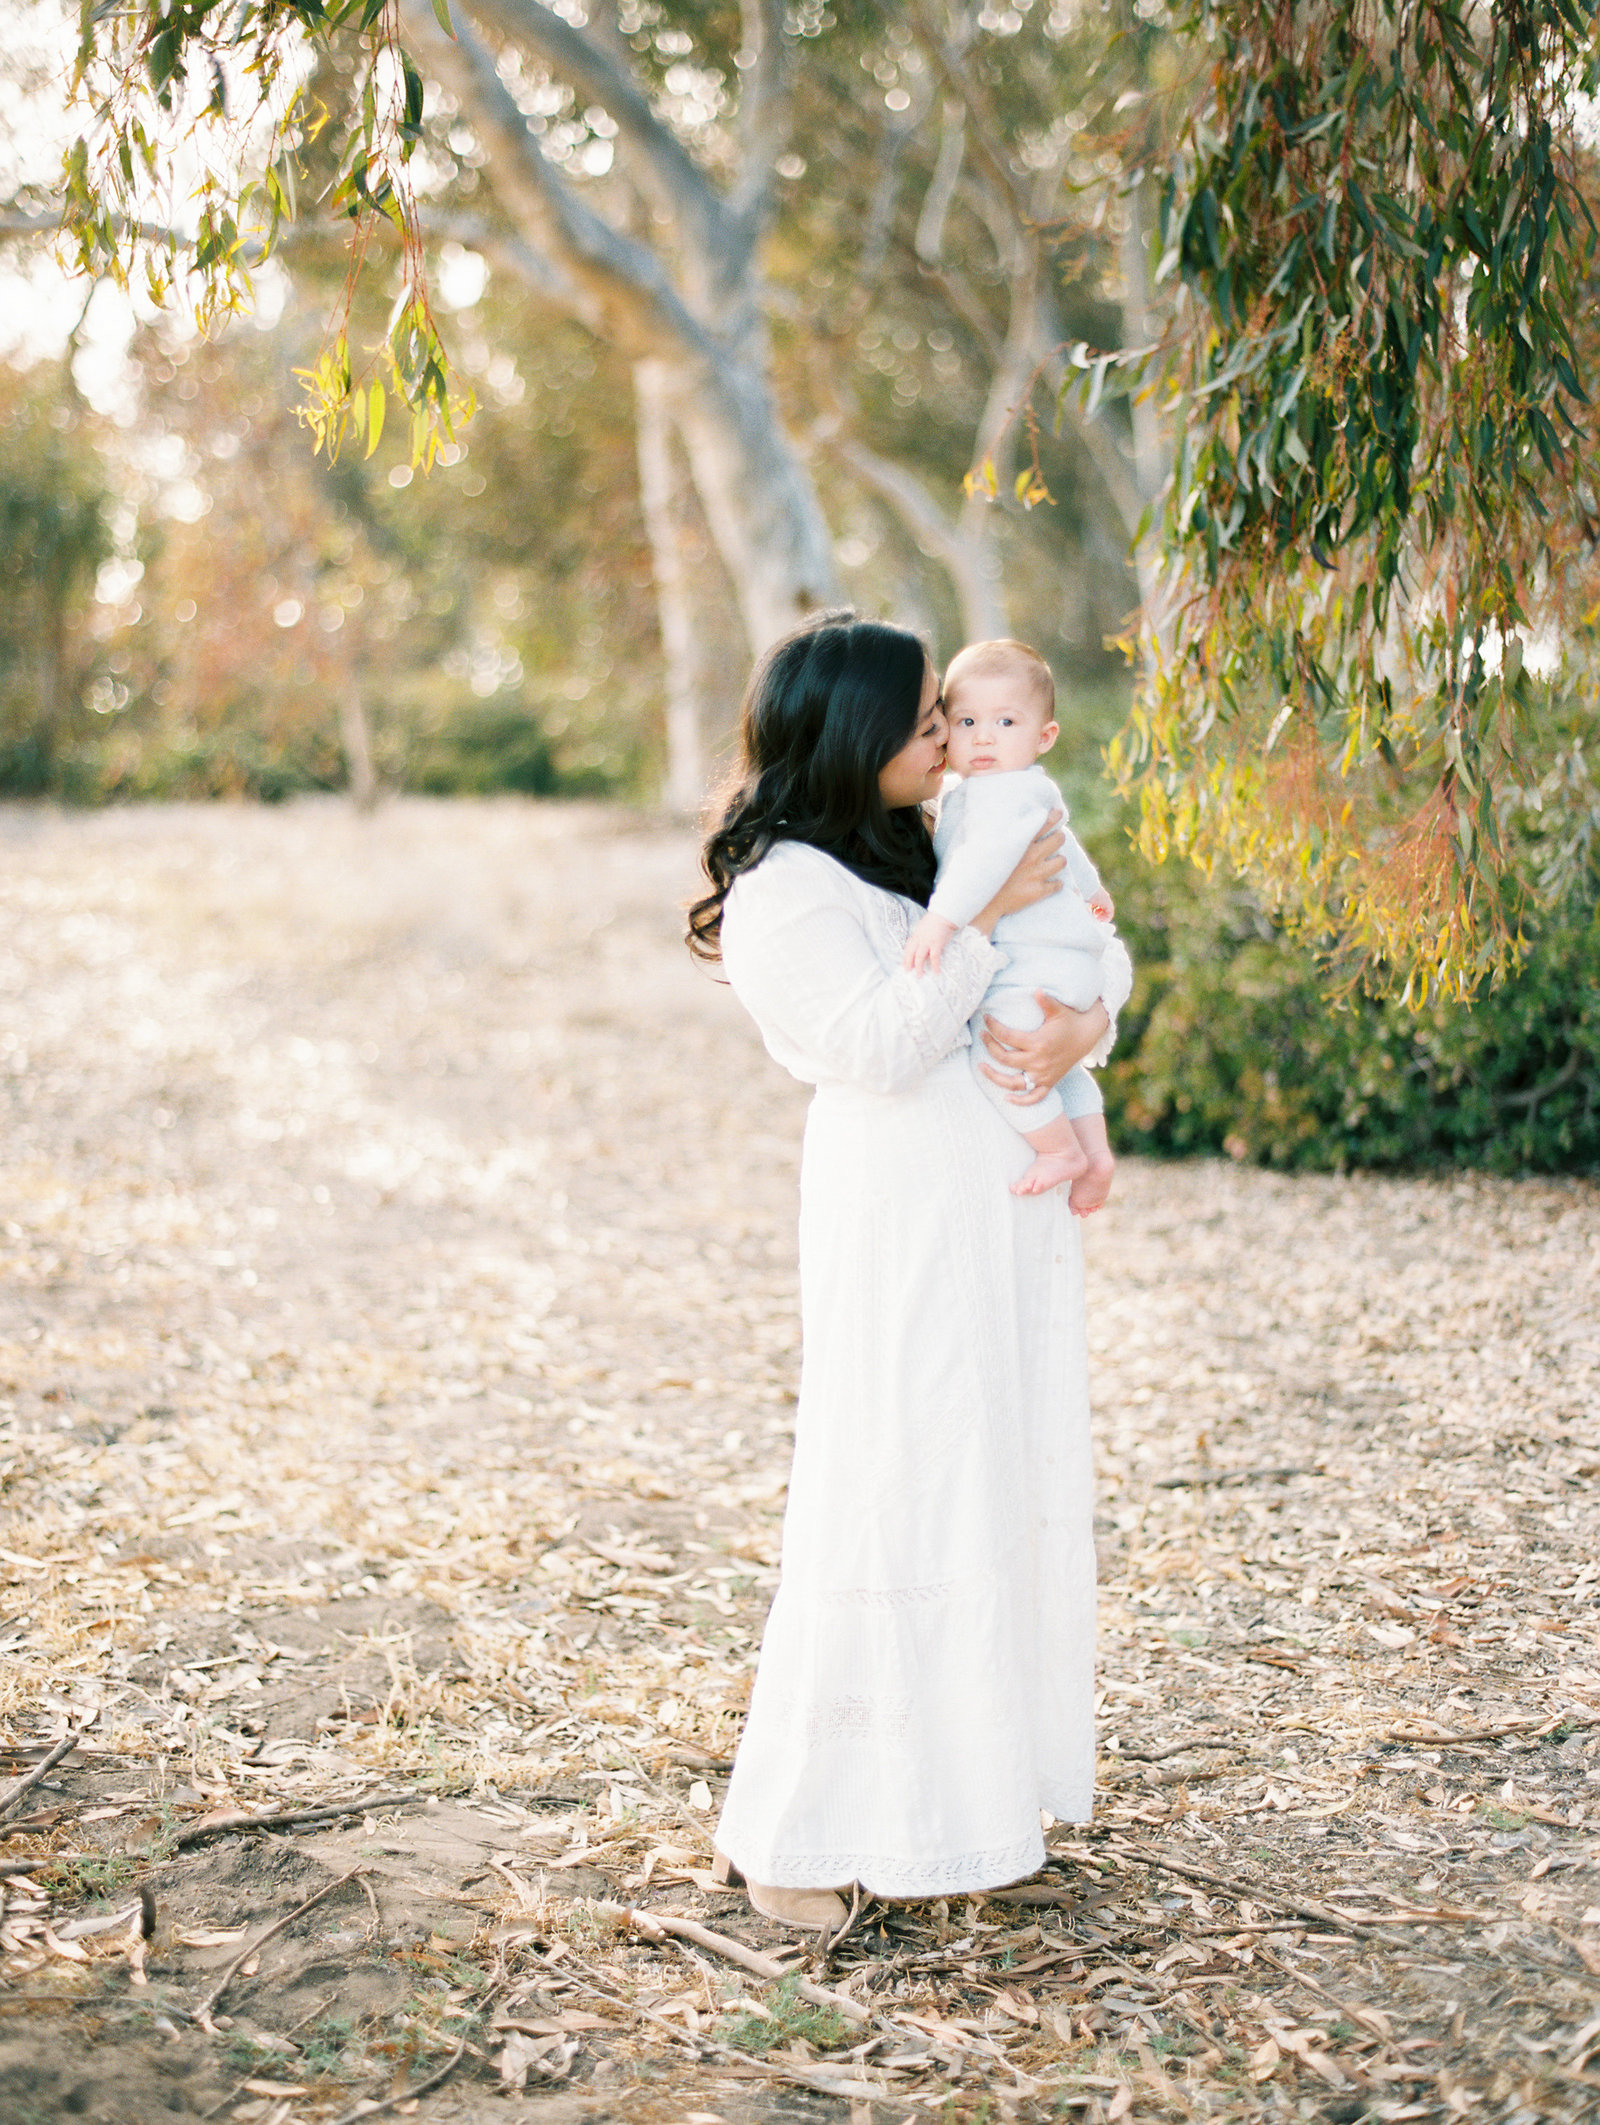 natalie bray studios, film portrait photographer, southern california photographer, maternity photographer -14